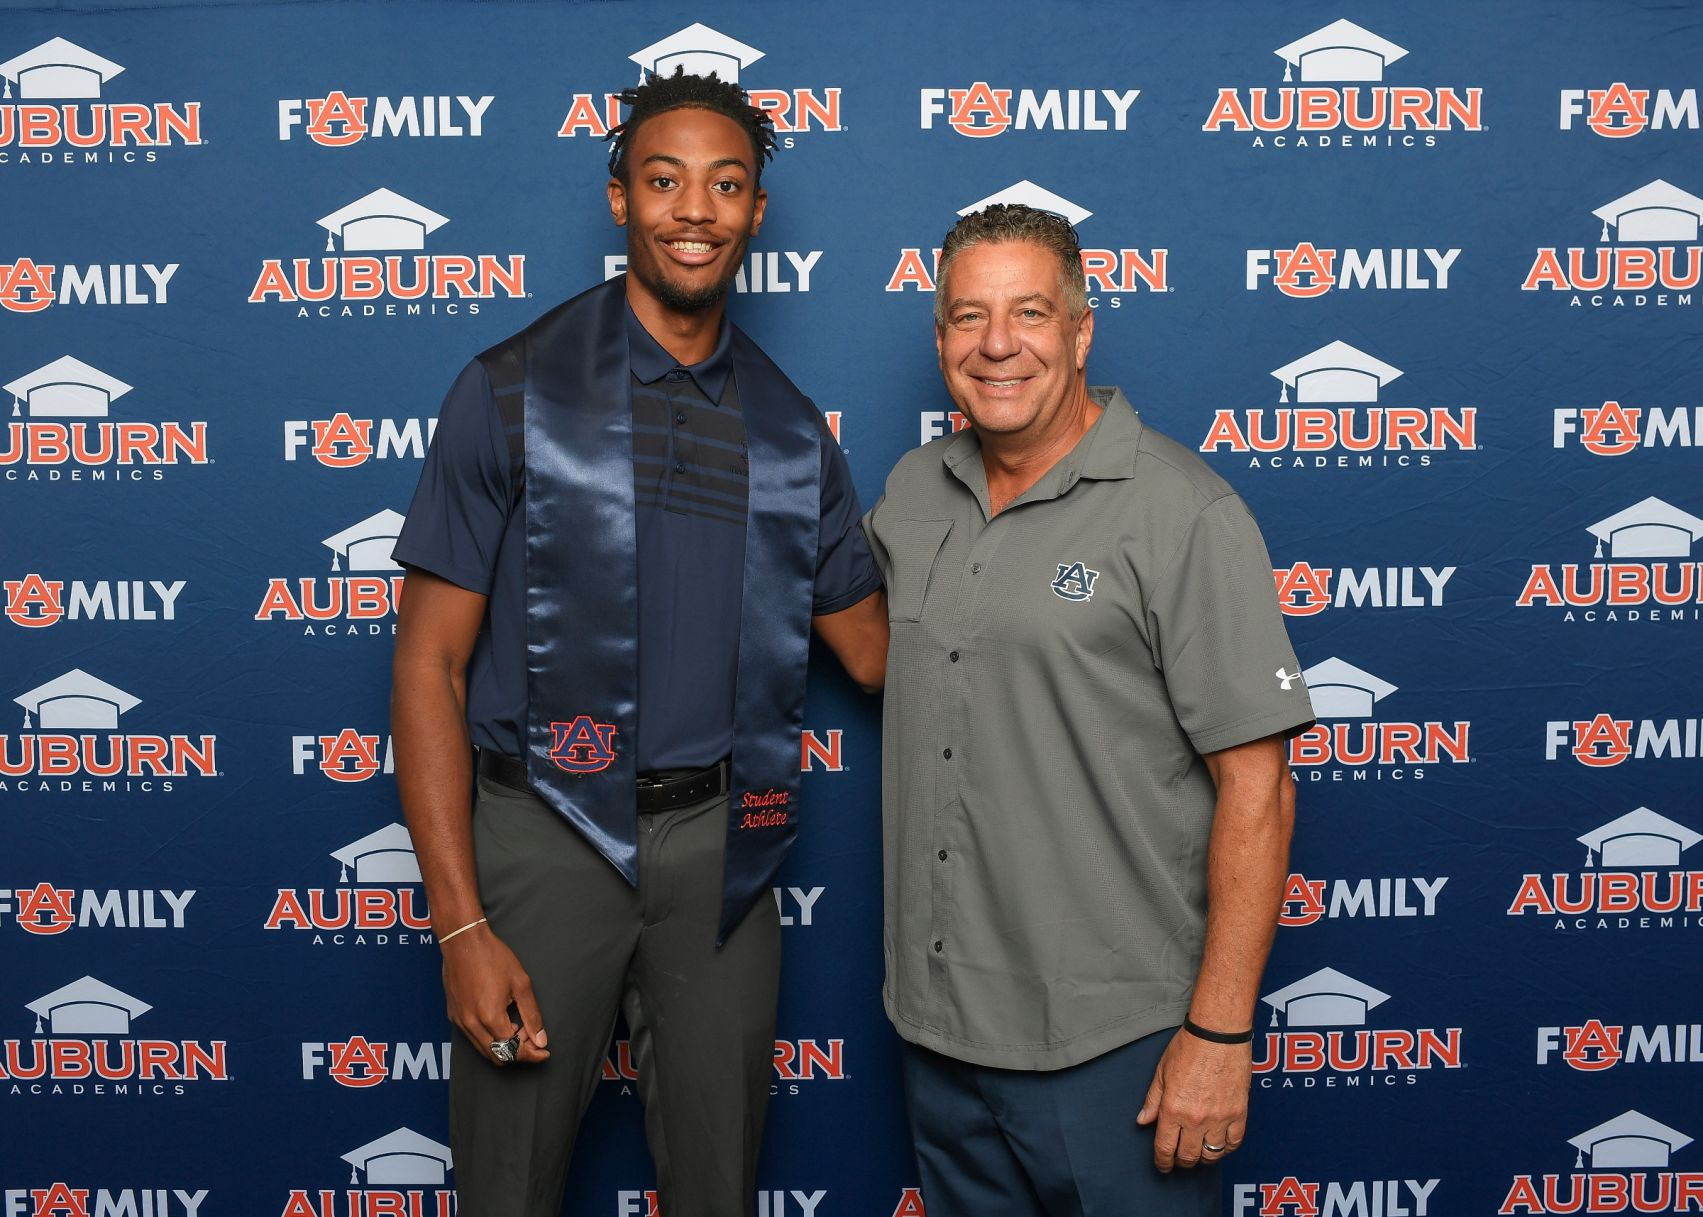 albanyherald.com - Gillian McIntyre Staff Correspondent - After memorable basketball career at Auburn, Worth County native Anfernee McLemore looking forward